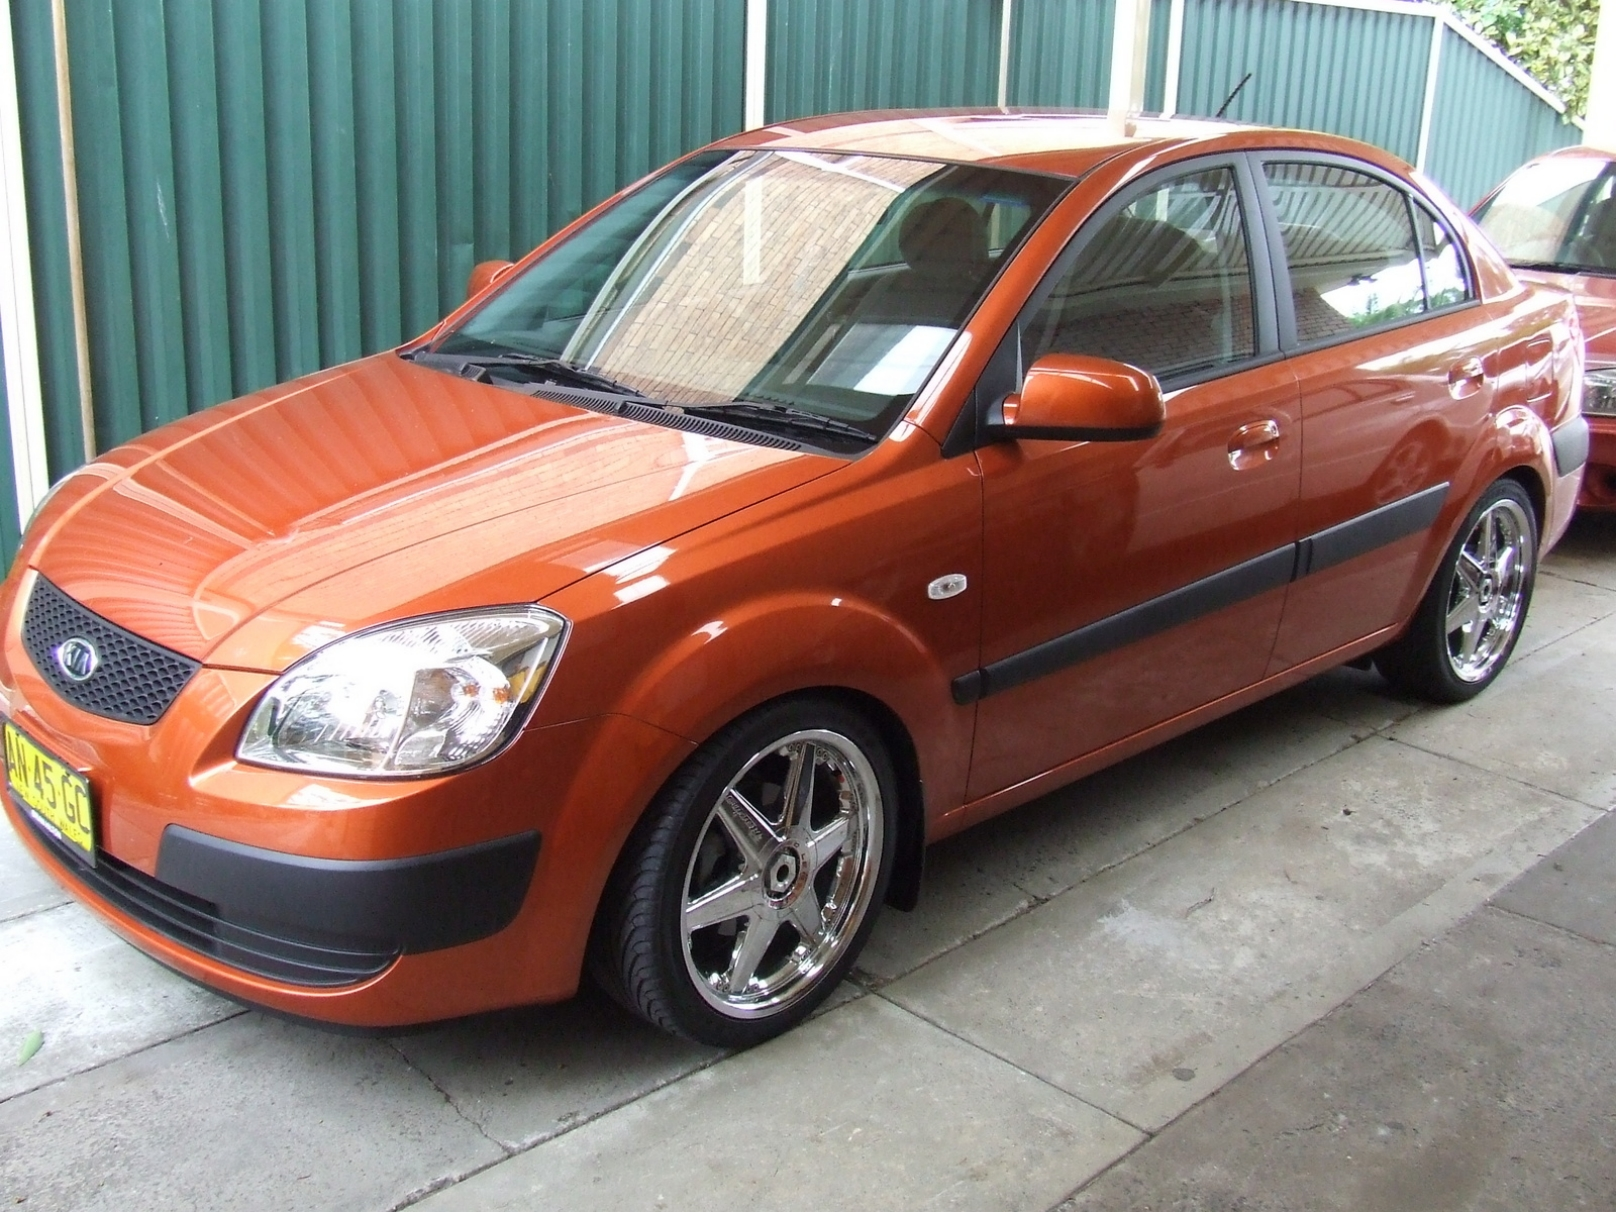 Kia Rio 1.5 2007 photo - 1